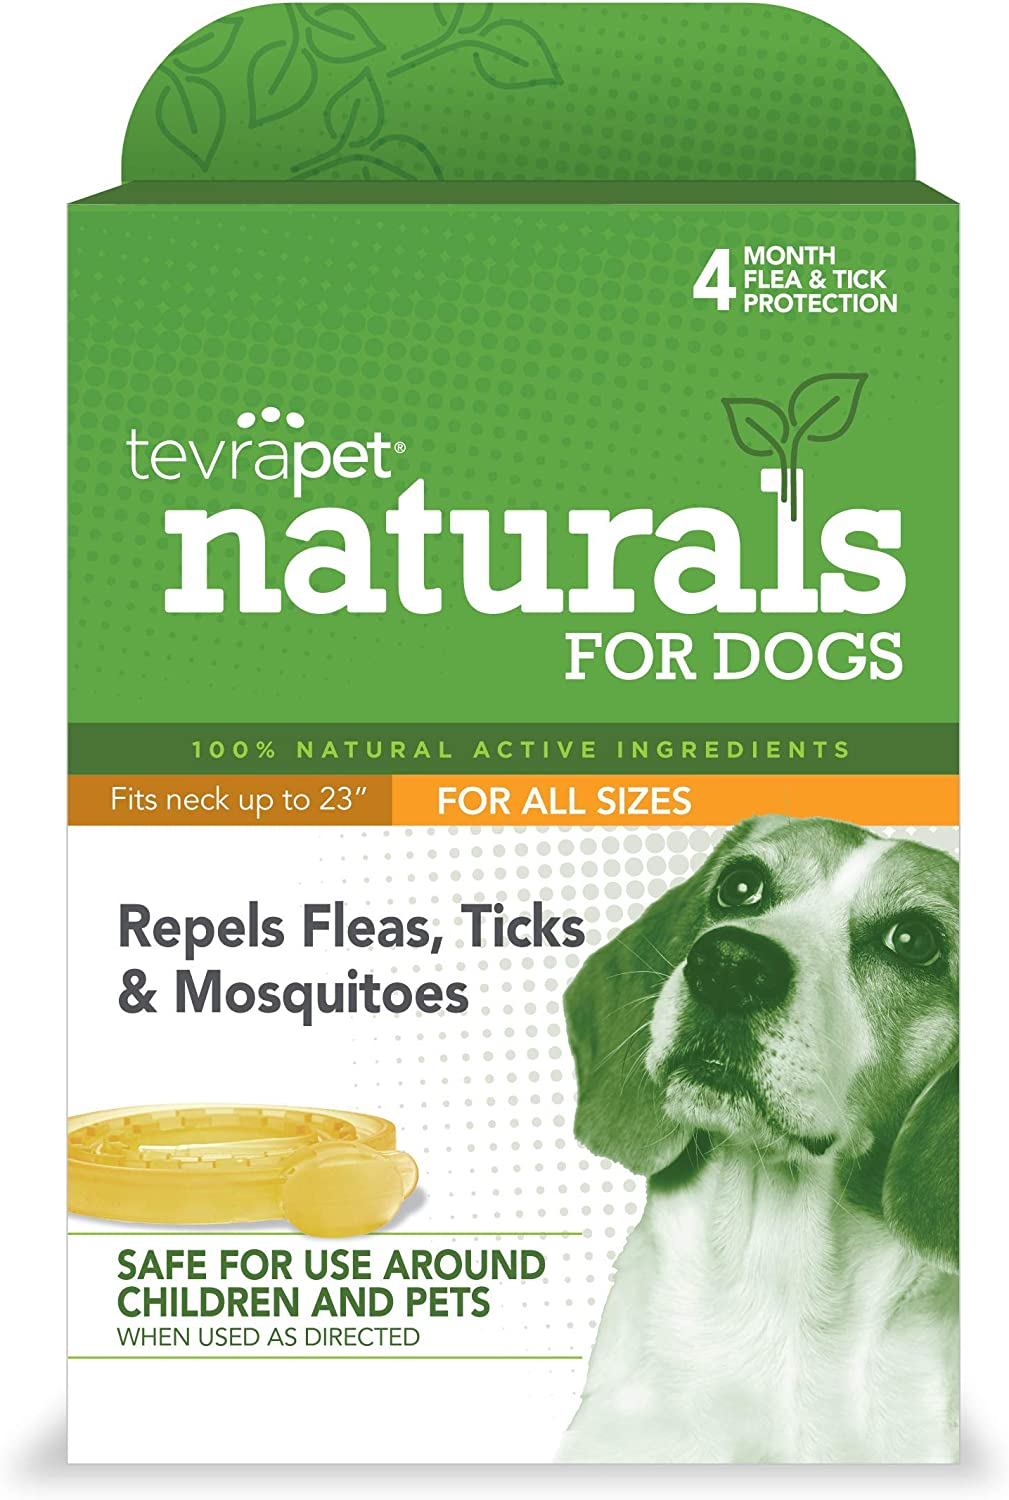 TevraPet Naturals Flea and Tick Prevention for Dogs, Natural Flea and Tick Collar – Repels and Controls Fleas, Ticks, and Mosquitoes